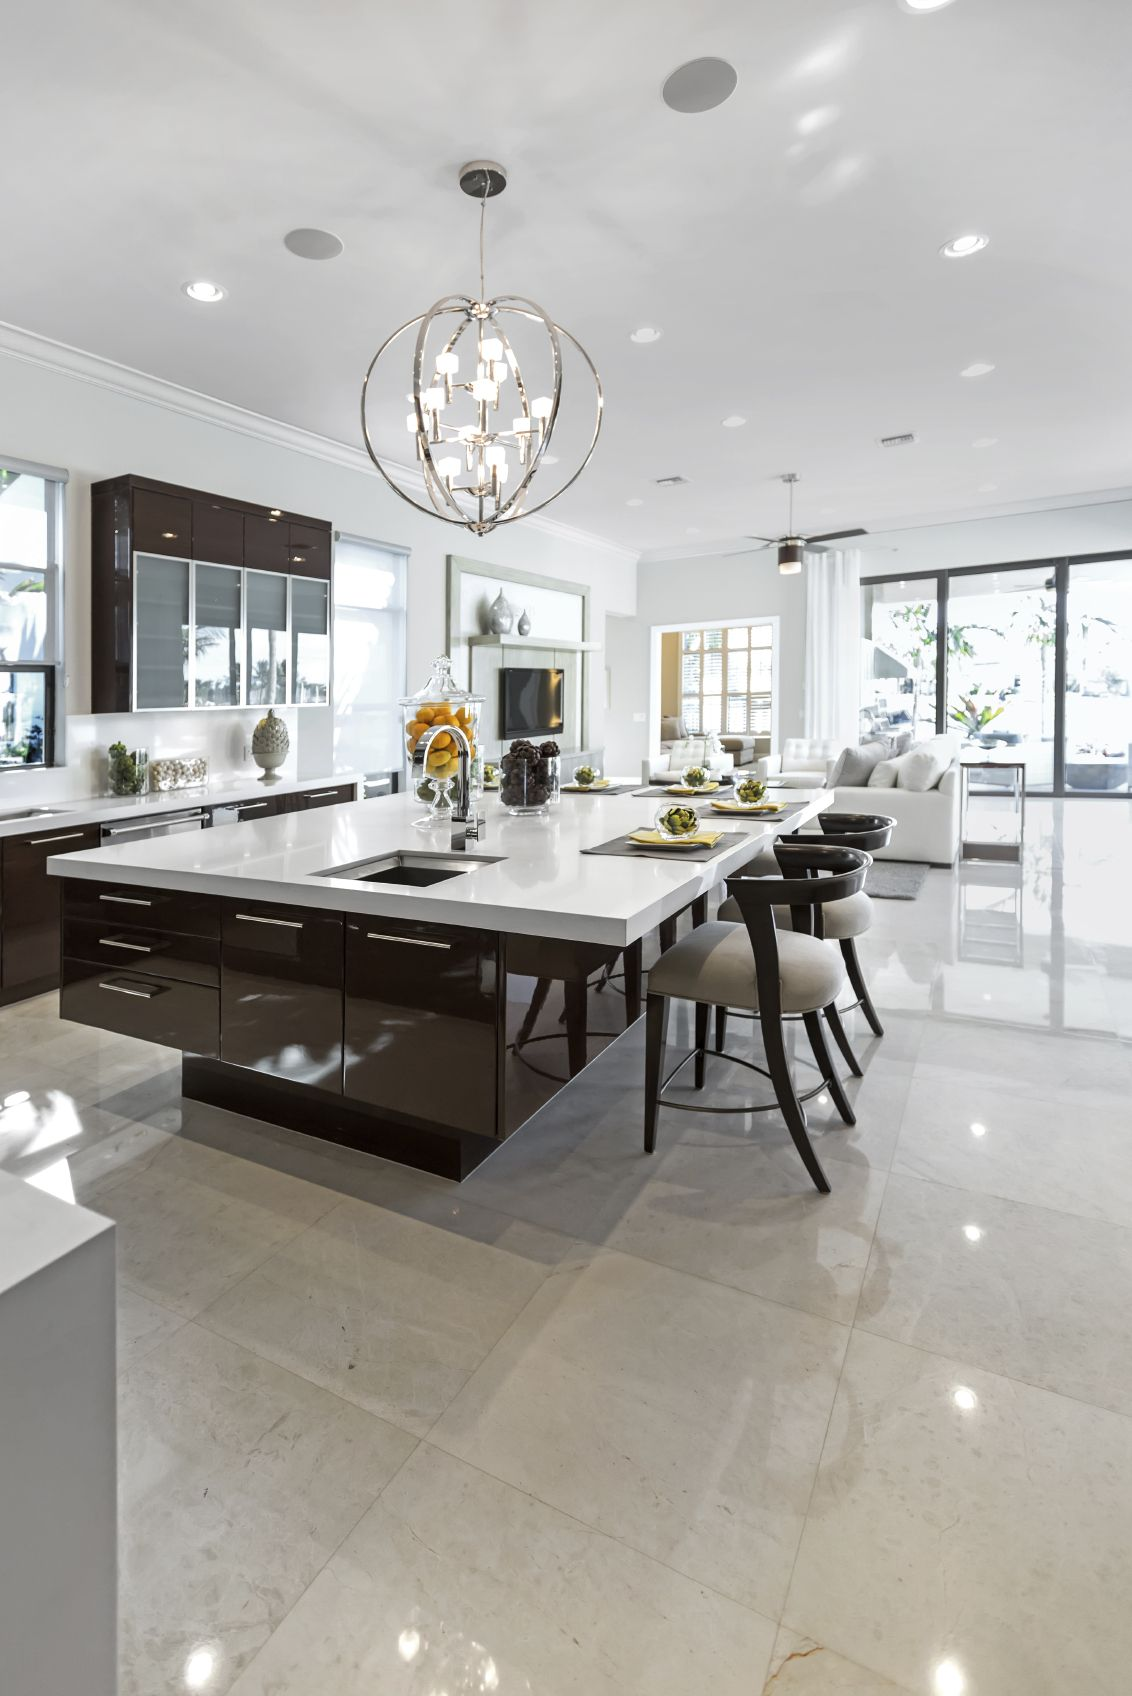 Good Large Modern White And Dark Brown Kitchen With Huge Modern Island With  Breakfast Bar.